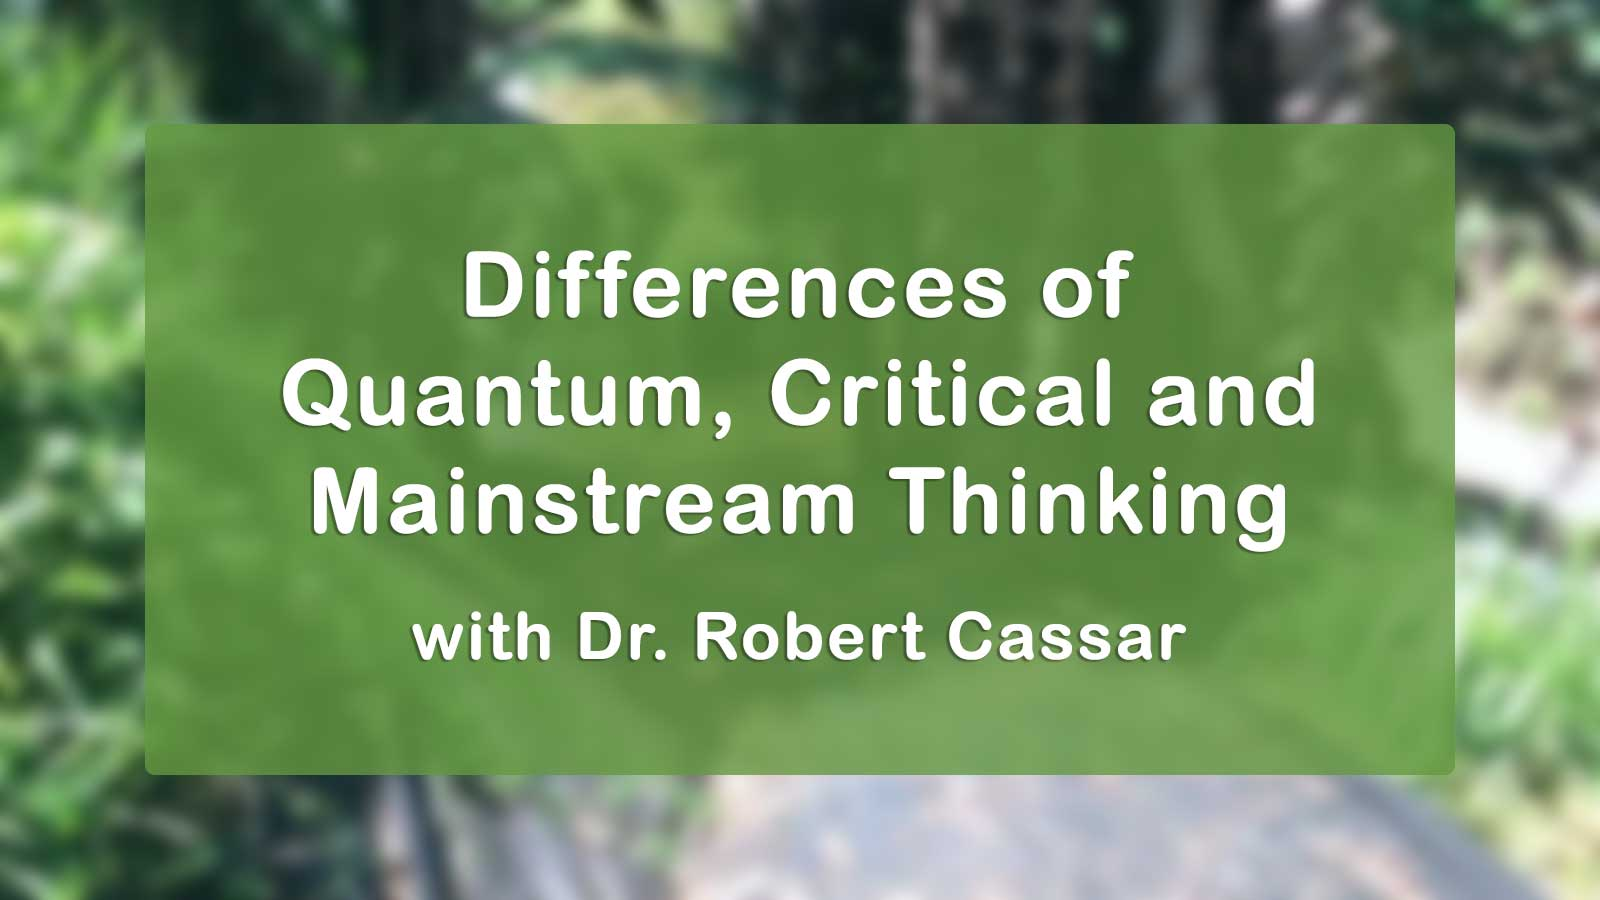 Differences of Quantum, Critical and Mainstream Thinking